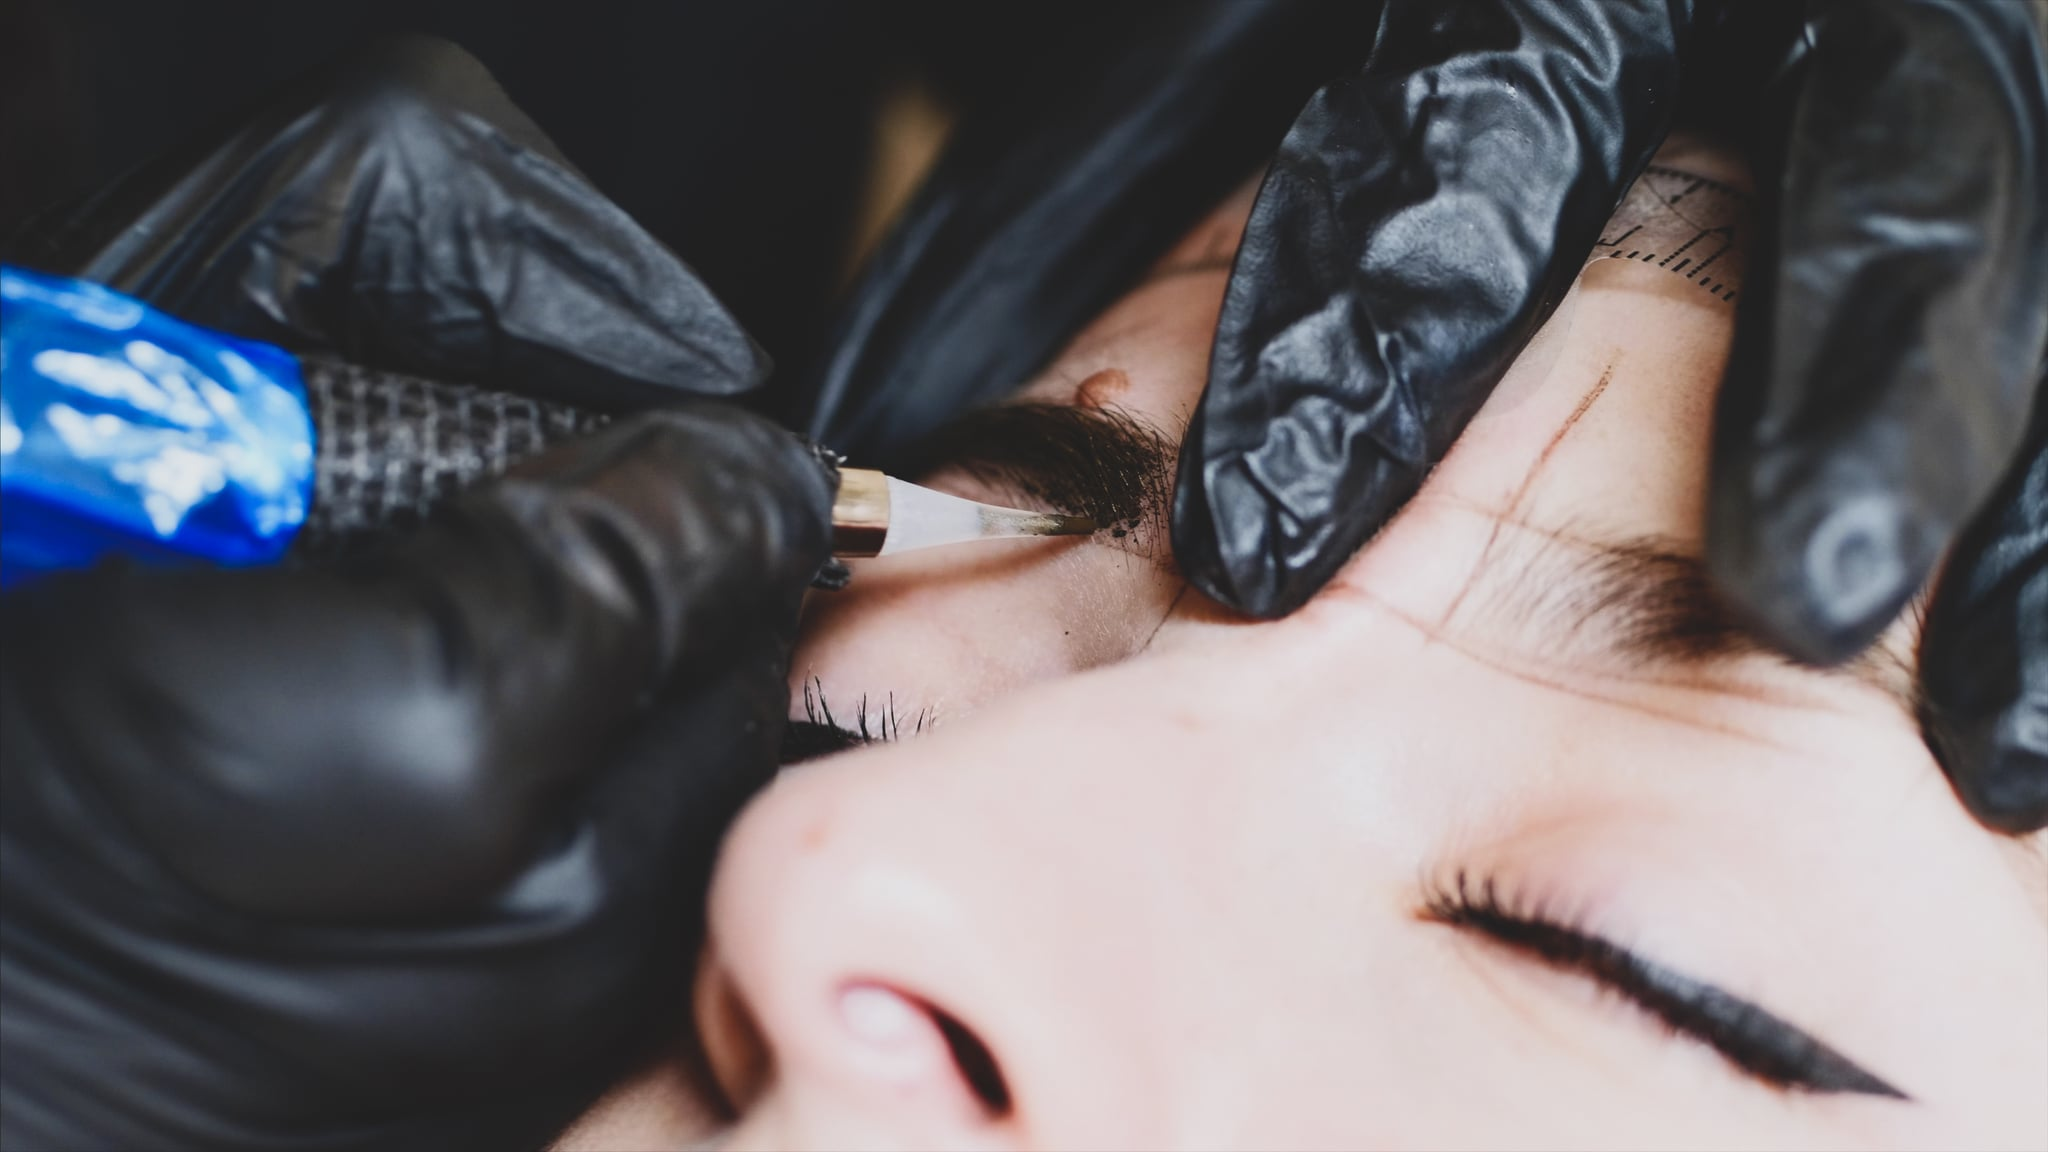 The microblading master in black gloves is filling up the shape of an eyebrow with a pigment holding with one hand woman's head, close-up, camera is above the client.